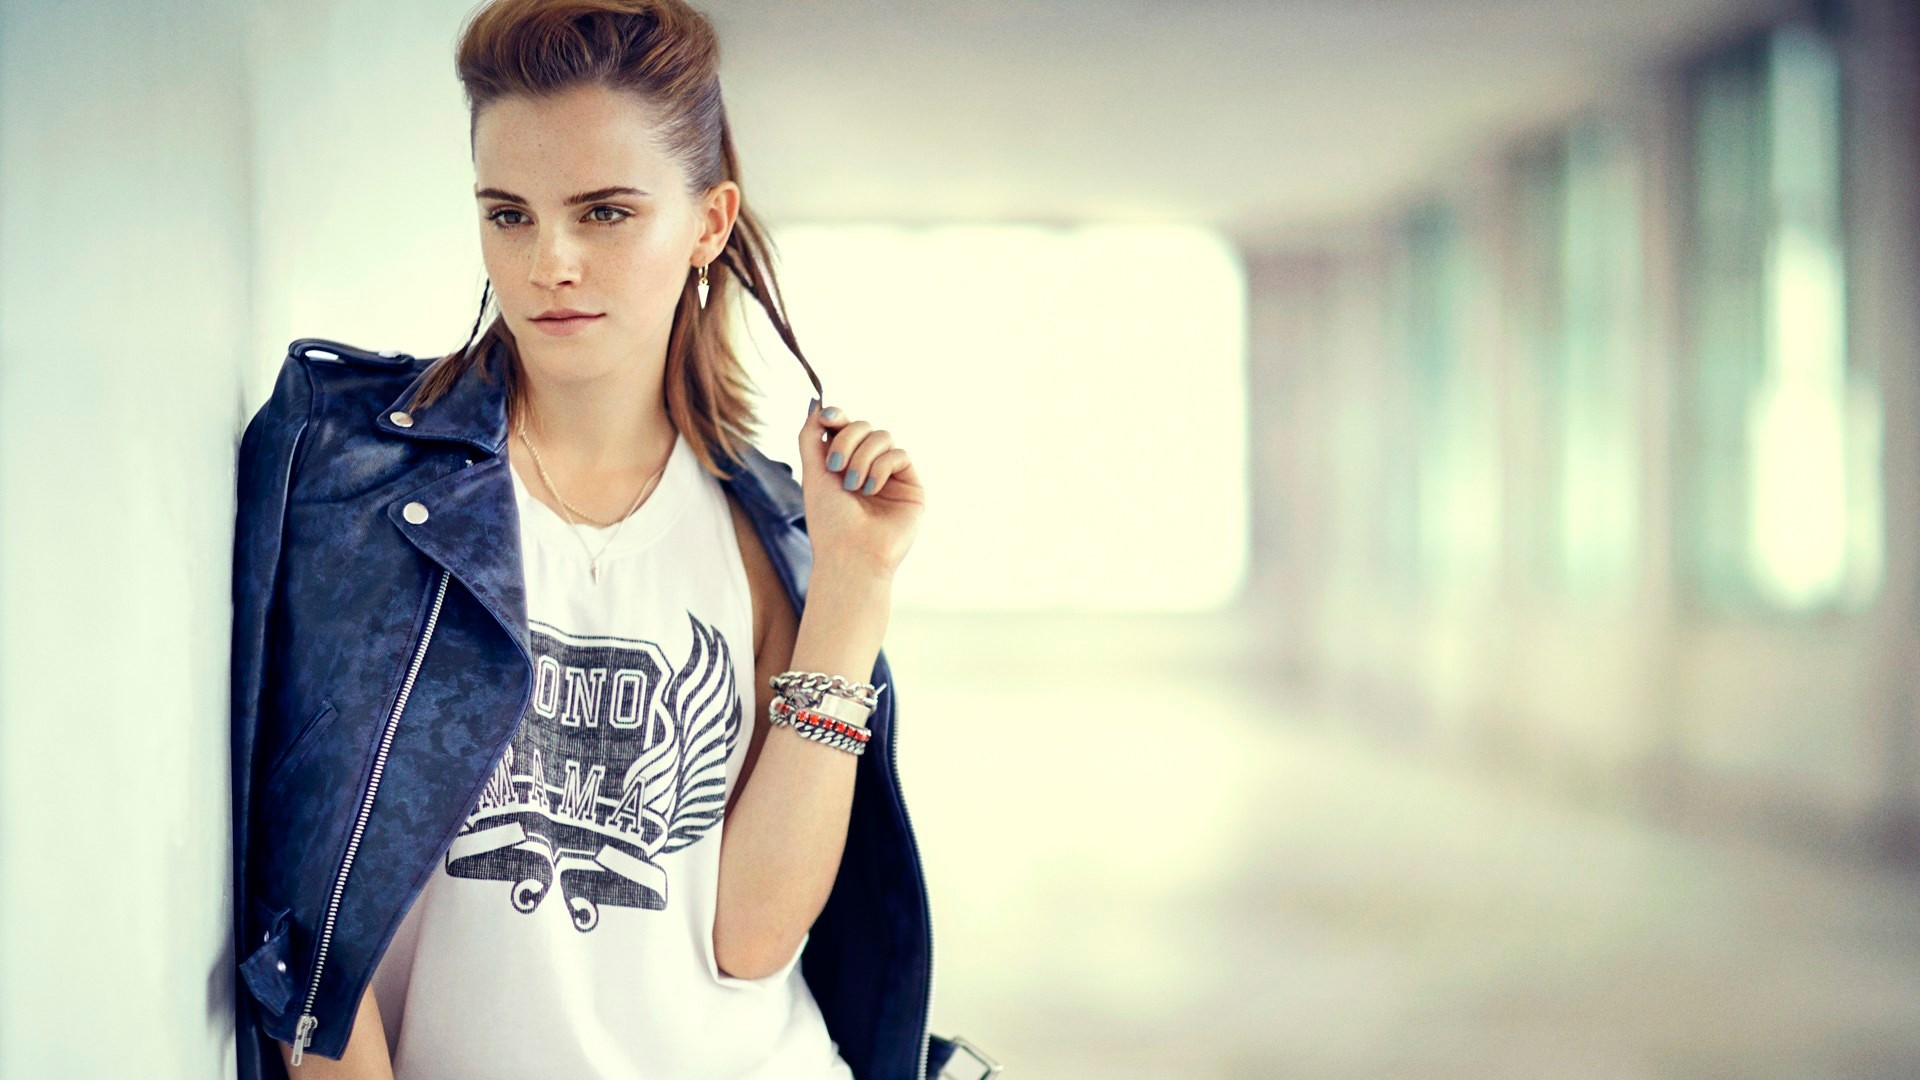 Emma watson style wallpaper high definition high for New fashion wallpaper